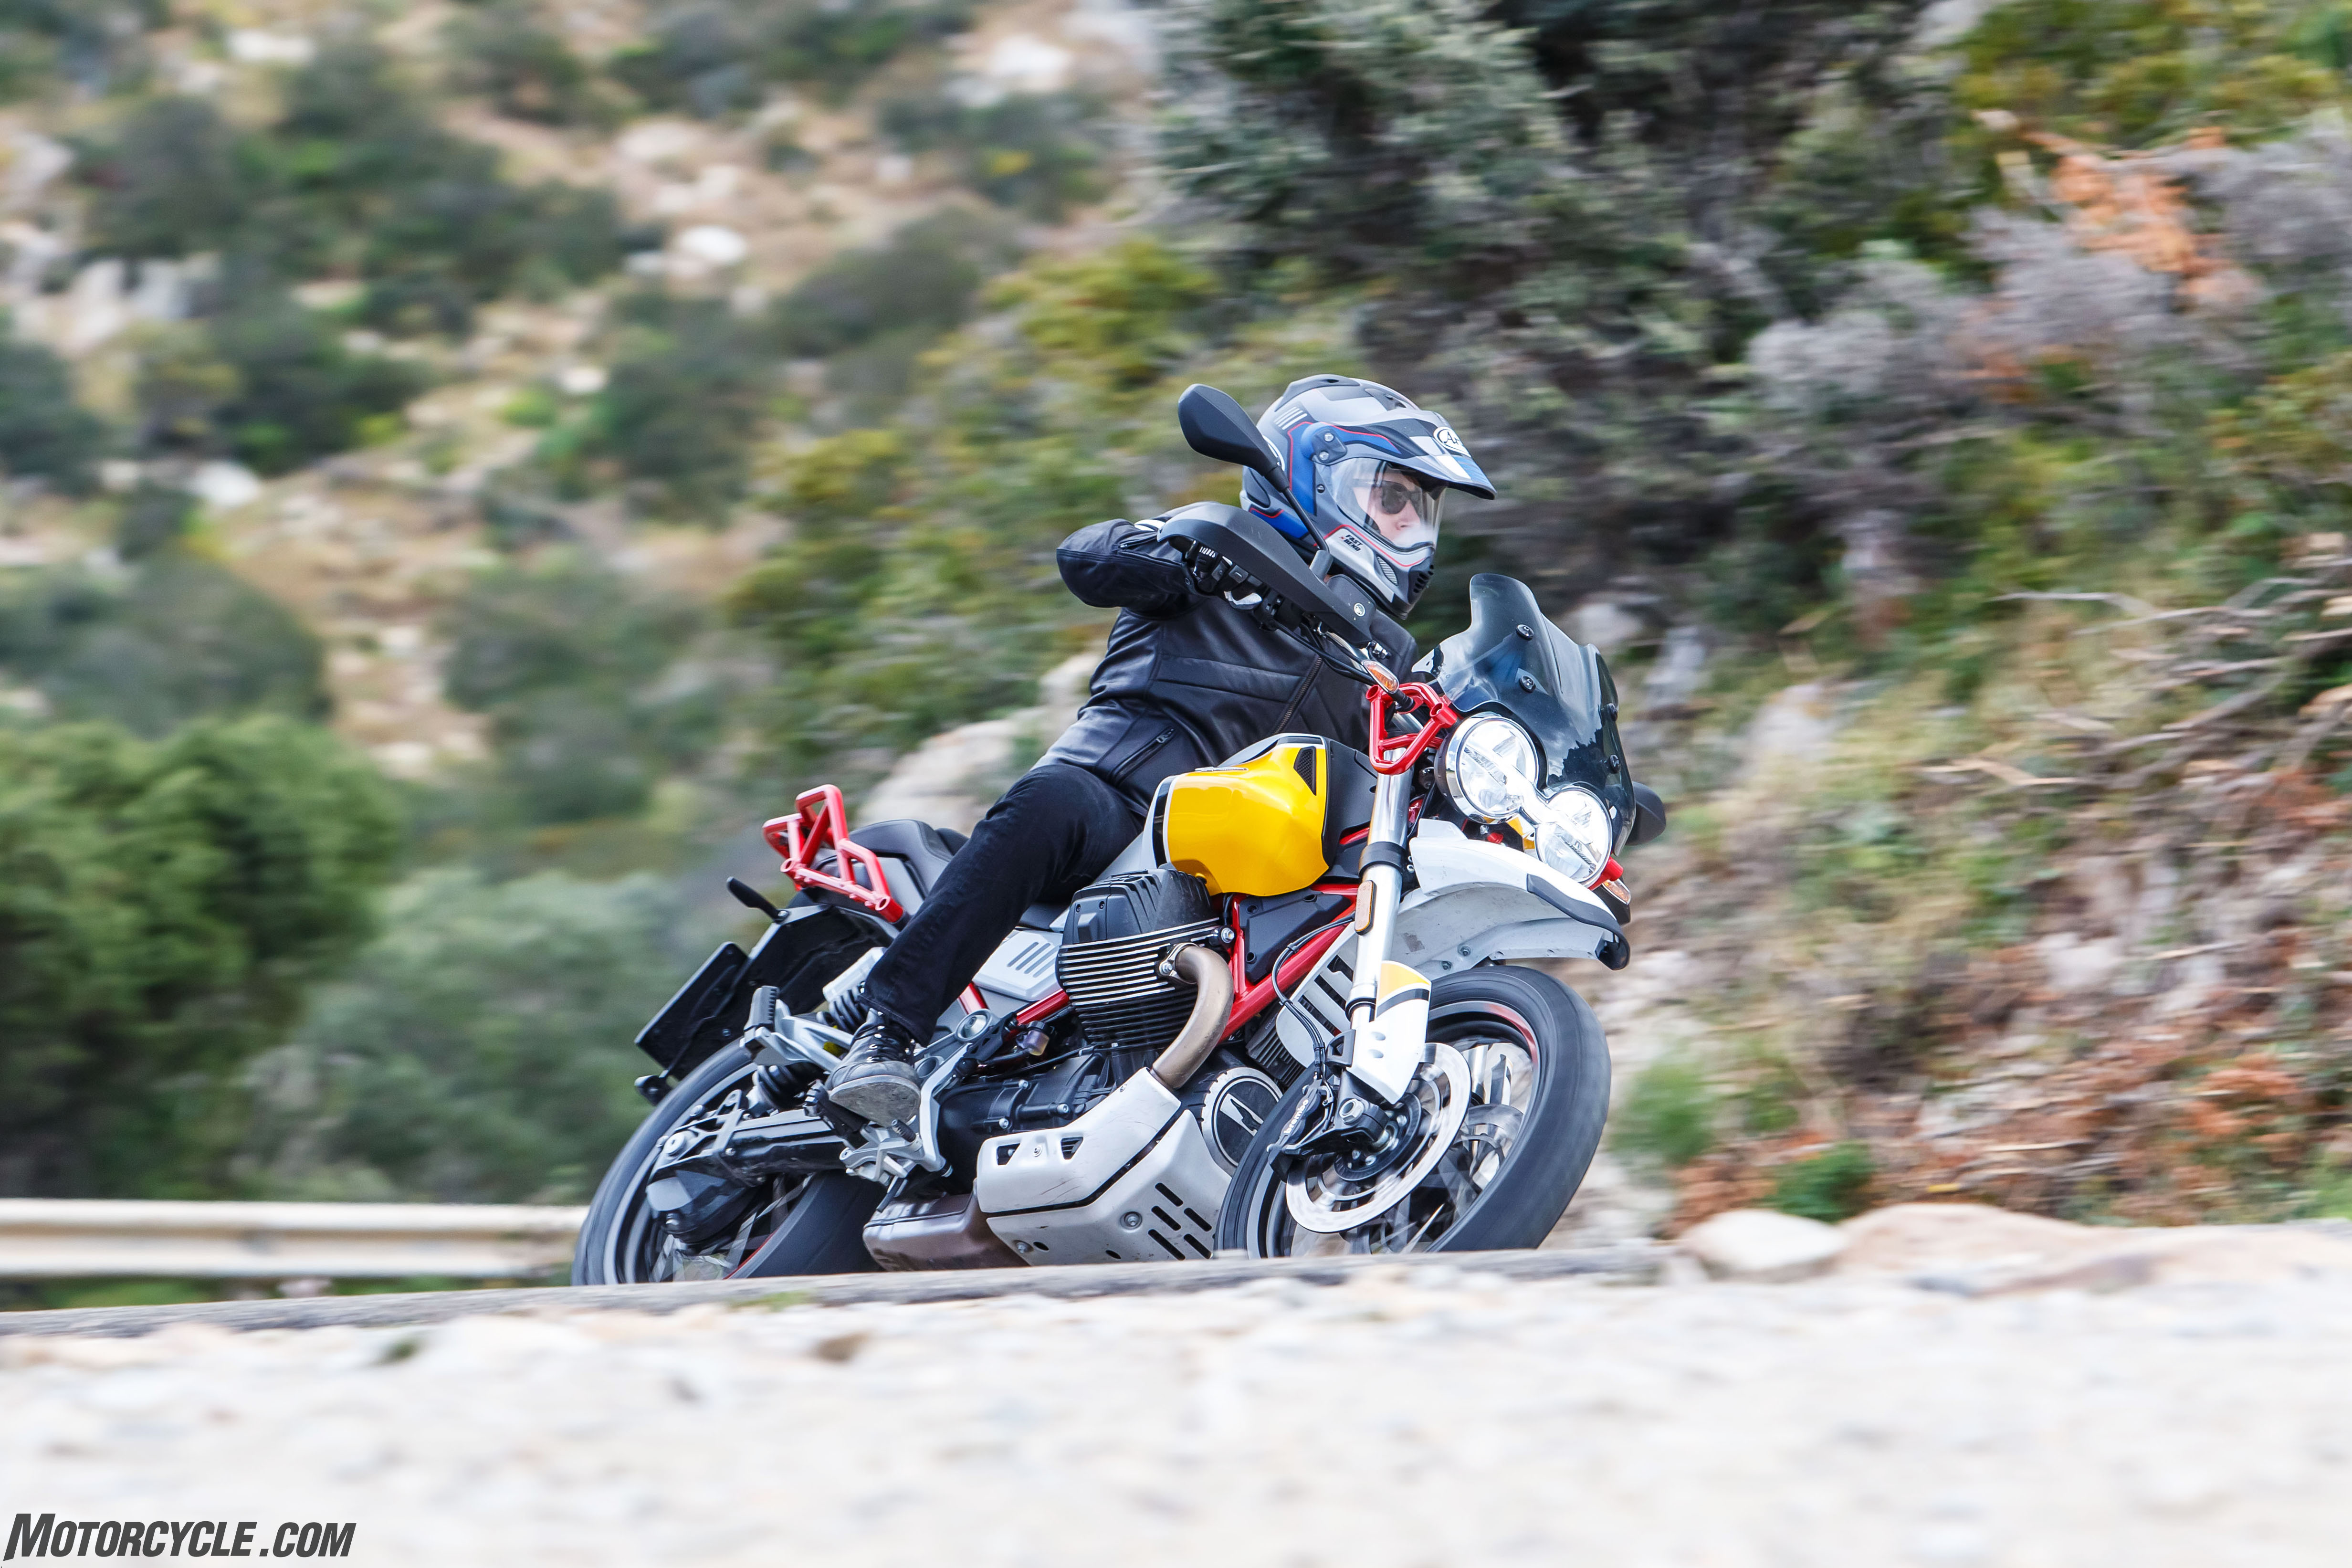 2020 Moto Guzzi V85 TT Review - First Ride - Motorcycle com